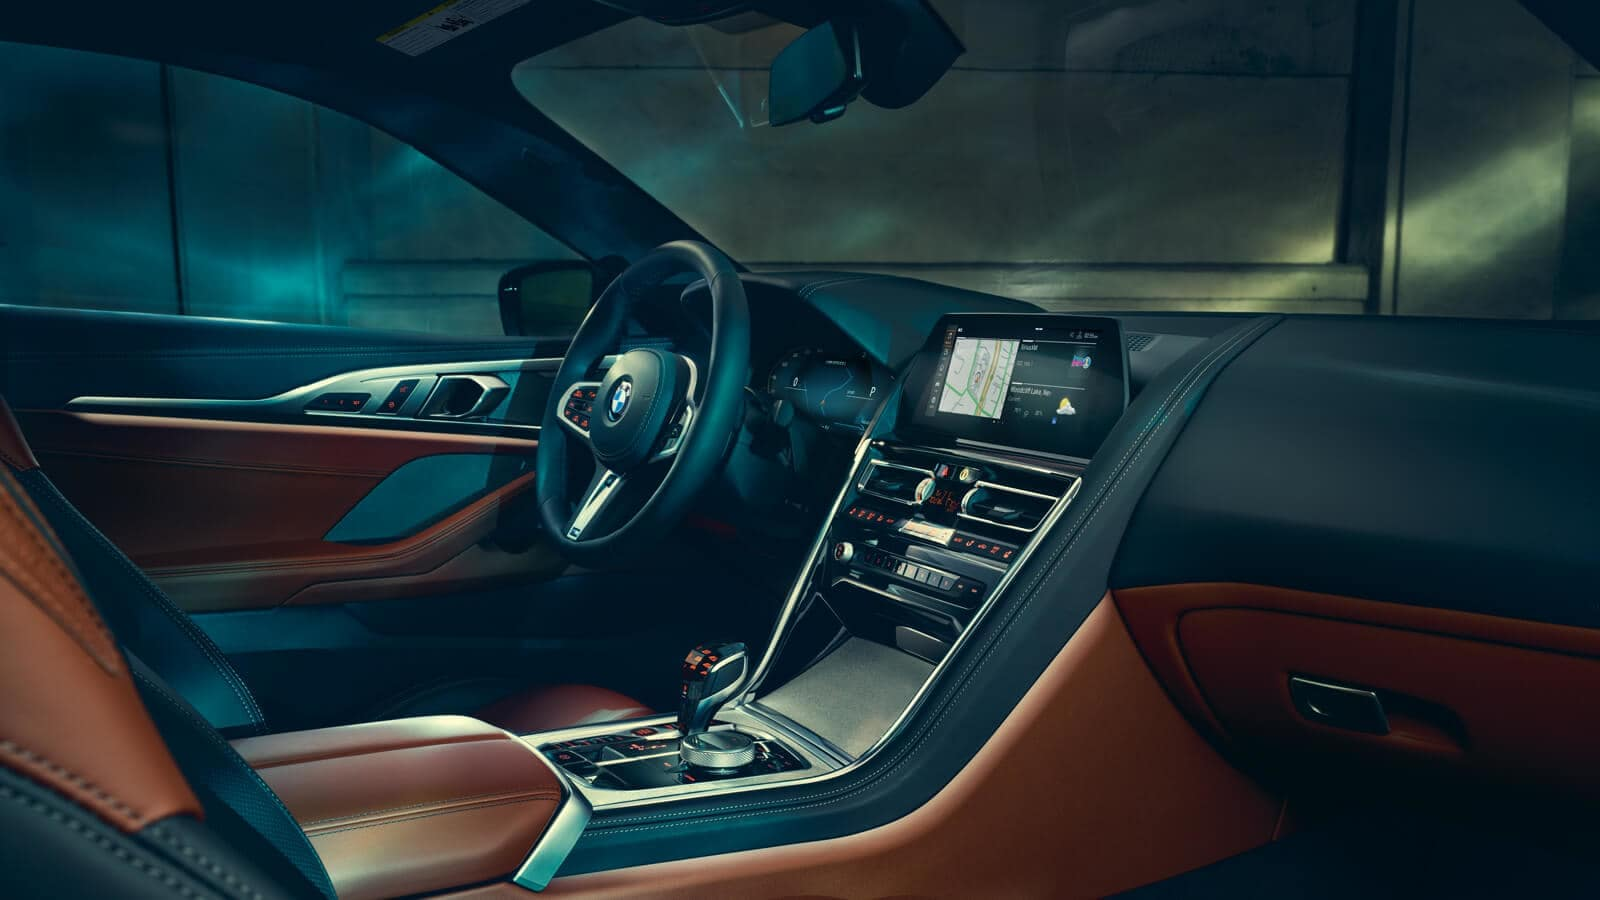 2019 BMW 8 Series front interior